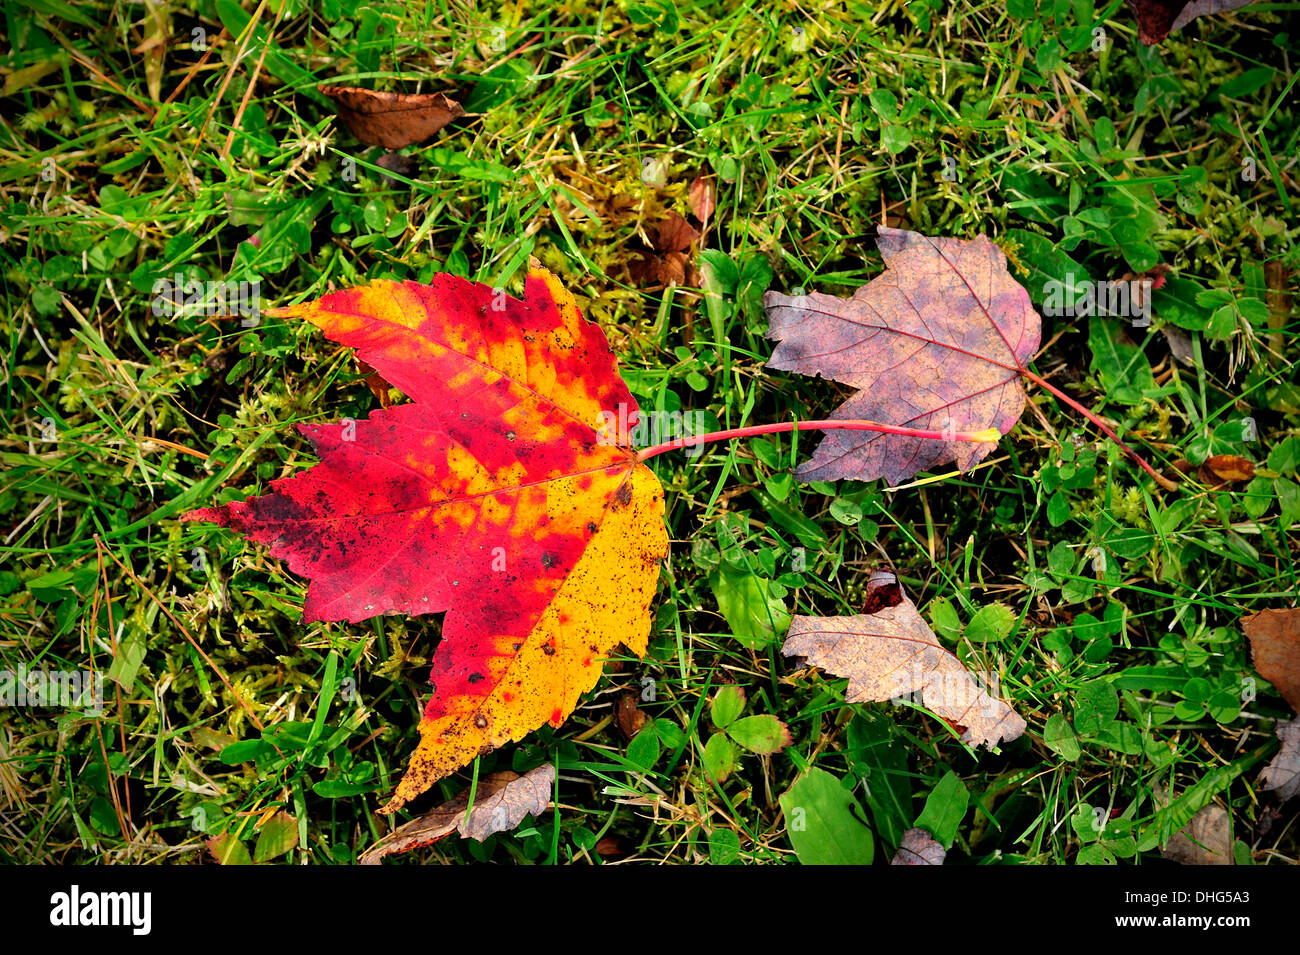 Leaf Changing Colors One Leaf Stock Photos & Leaf Changing Colors ...